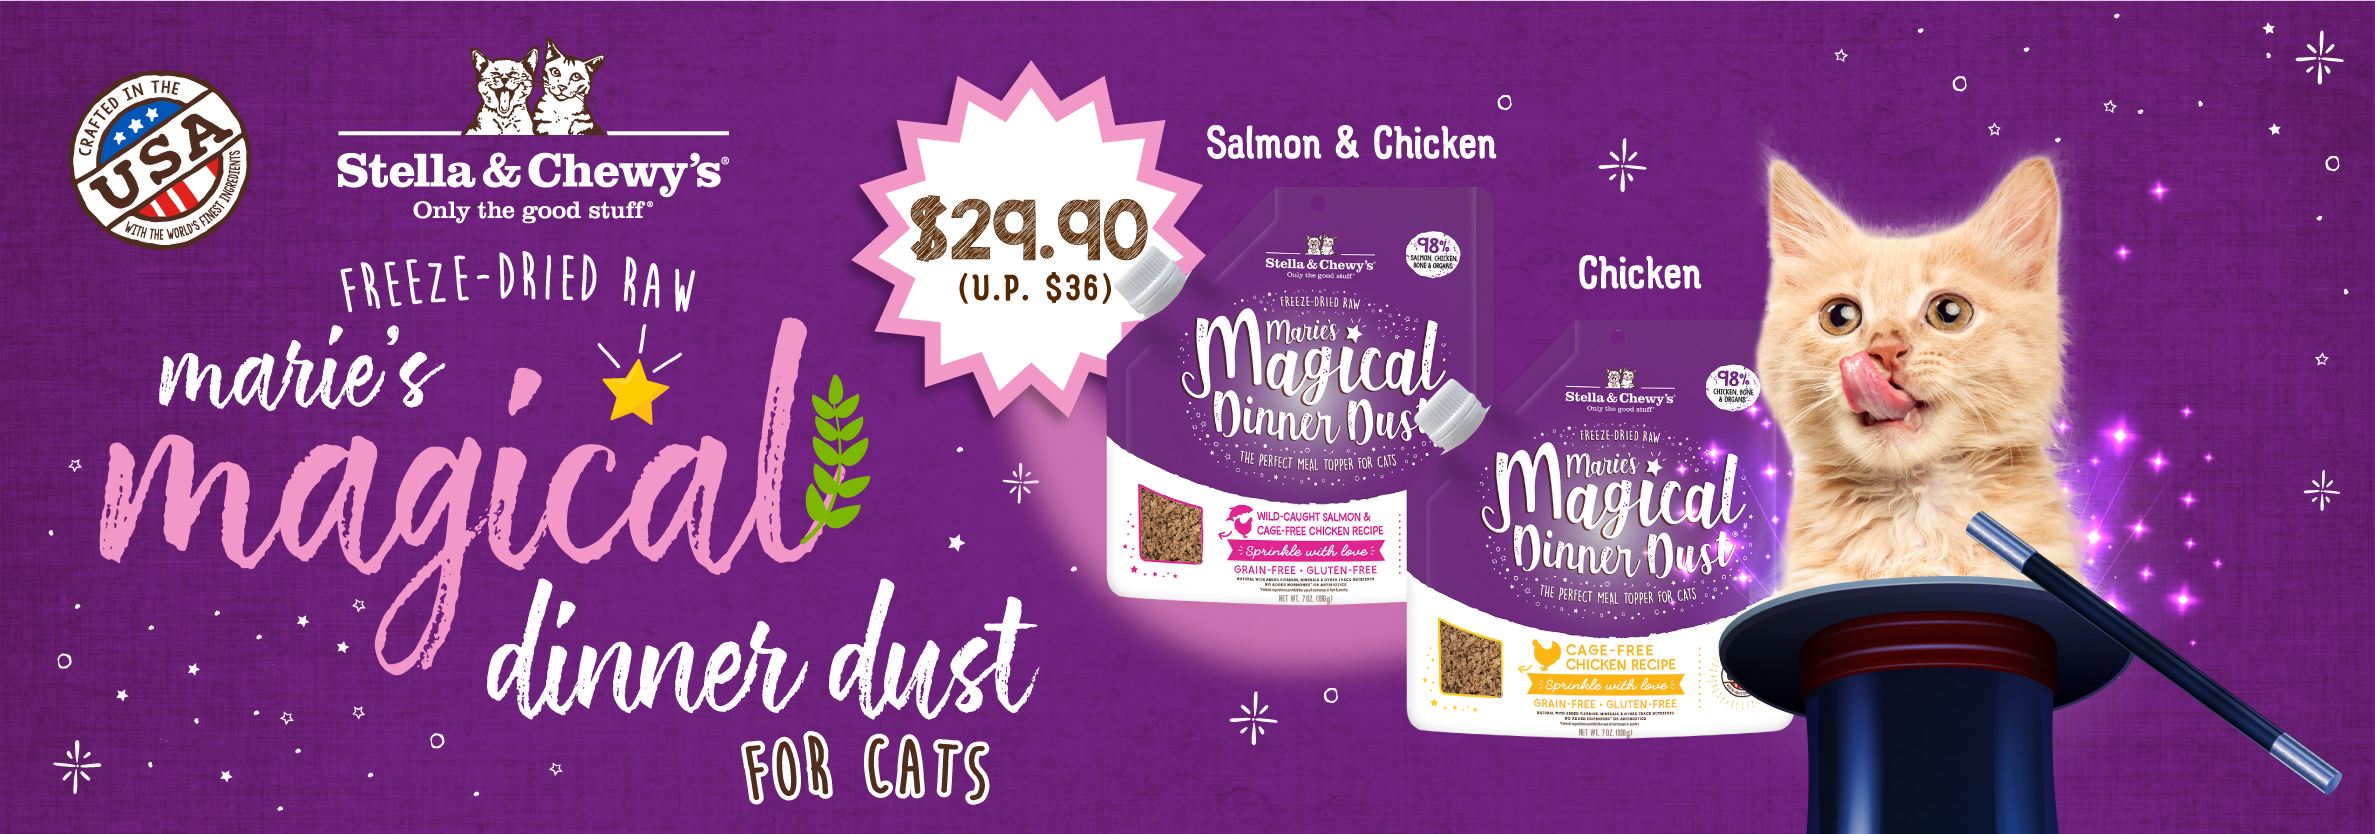 Cat Magical Dinner Dust - Launch Promo B